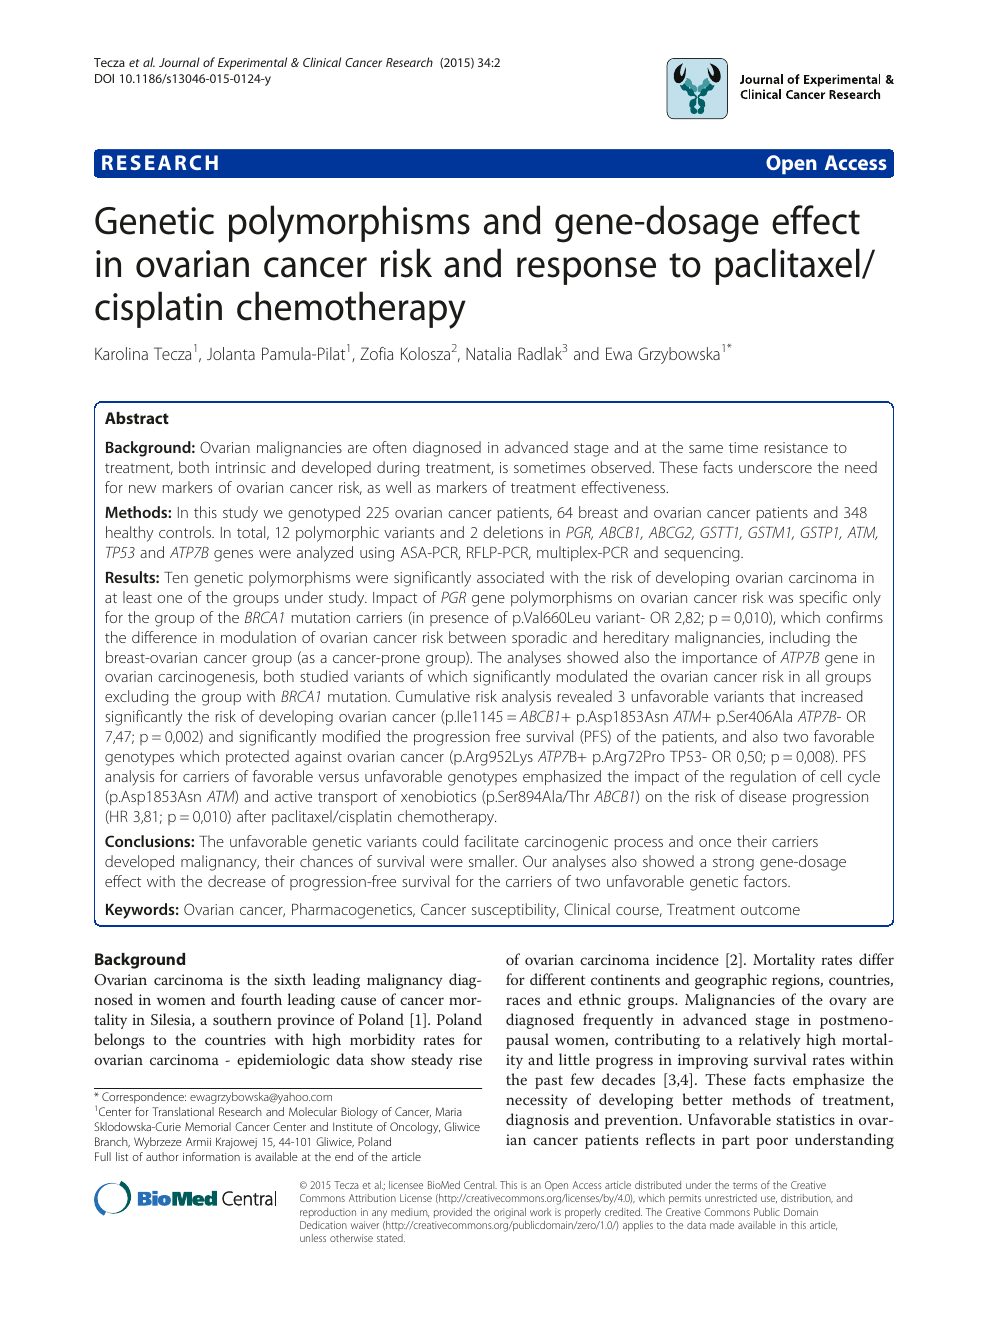 ovarian cancer journal article papilloma lingual